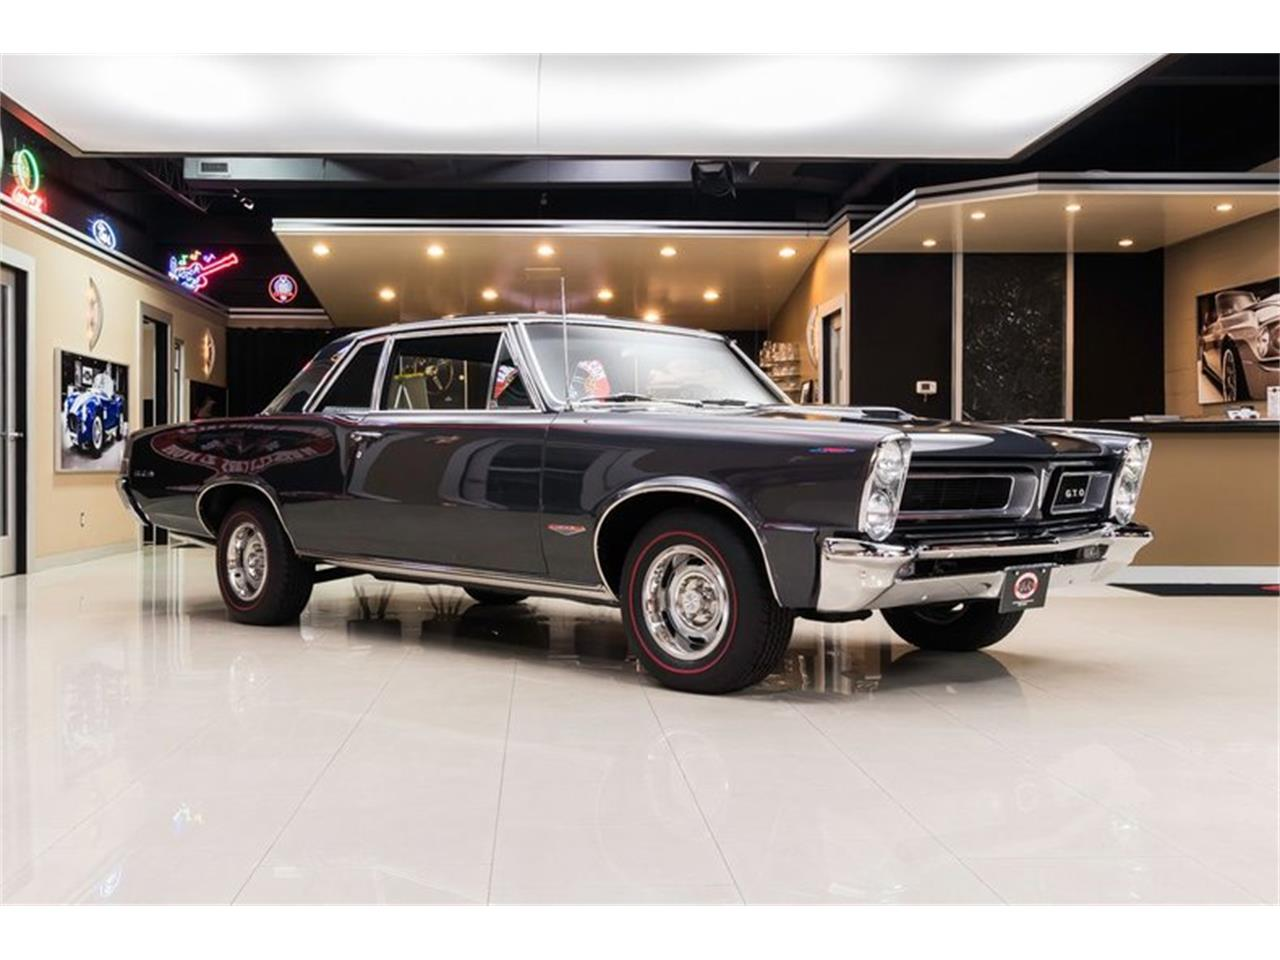 Large Picture of '65 GTO located in Michigan - $69,900.00 Offered by Vanguard Motor Sales - R1WY